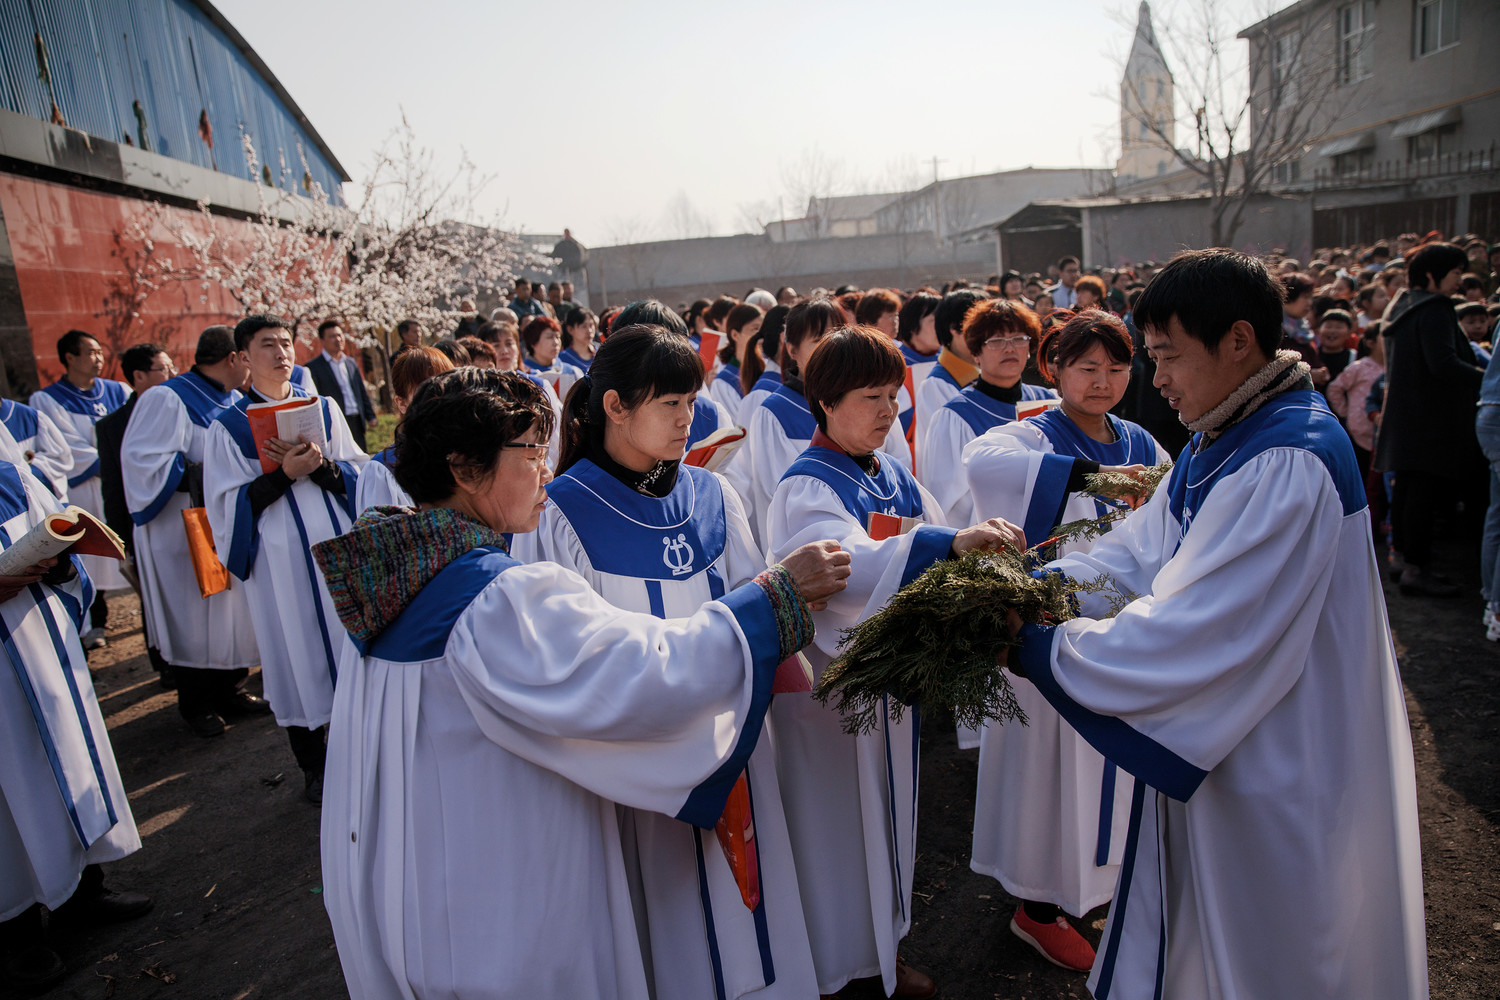 Worshippers prepare for the Palm Sunday procession March 25 outside a Catholic Church in Youtong, China. For the first time in decades, all of the Catholic bishops in China are in full communion with the Pope, the Vatican announced Sept. 22.